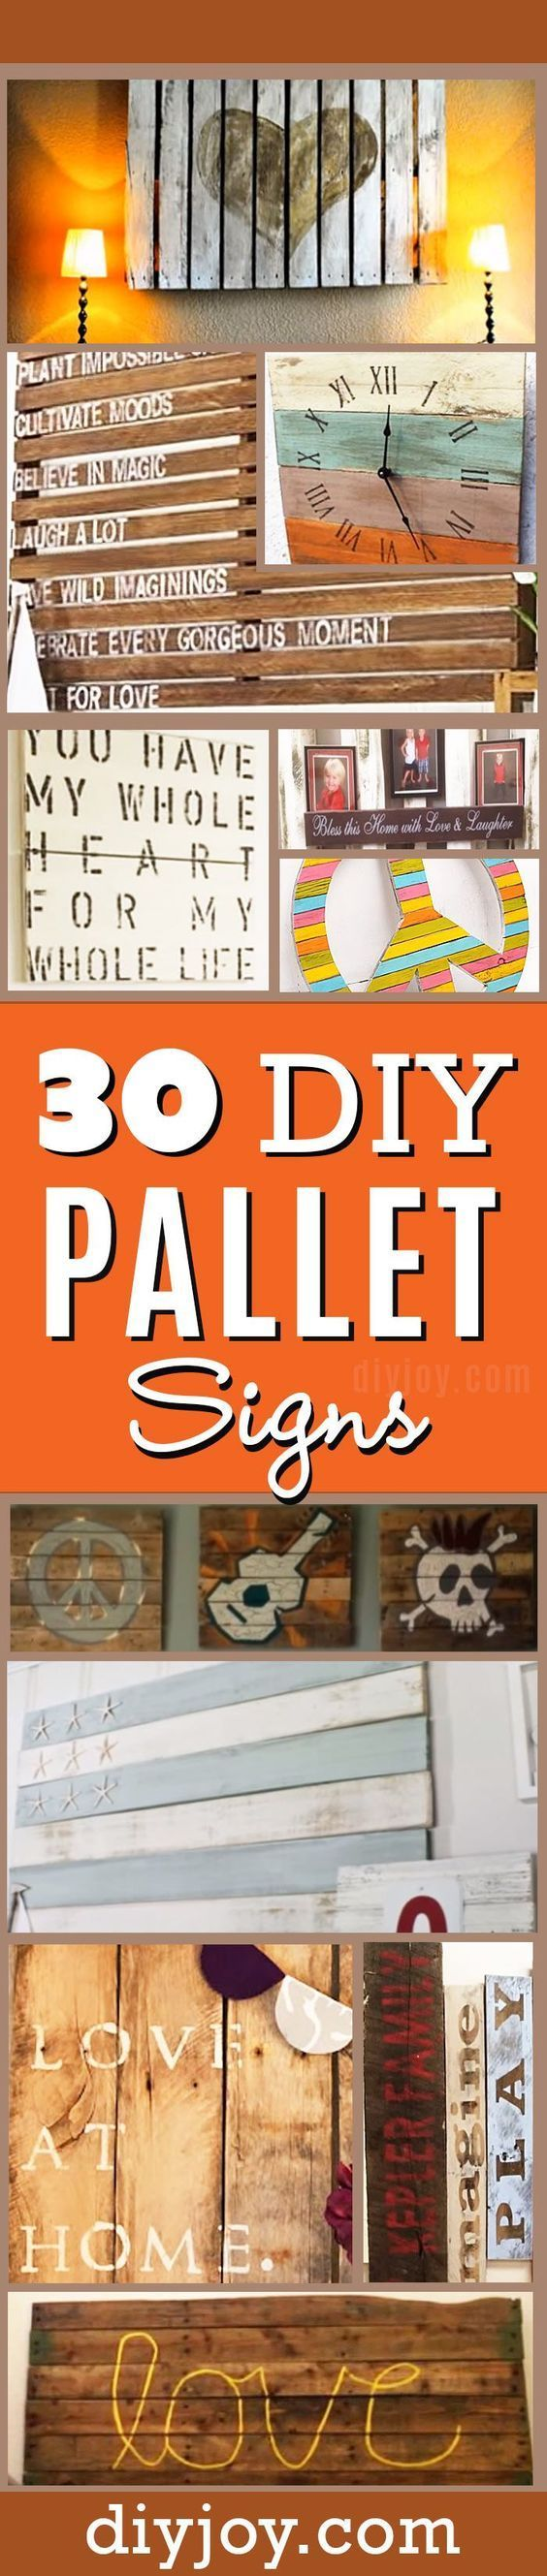 DIY pallet signs we love and awesome